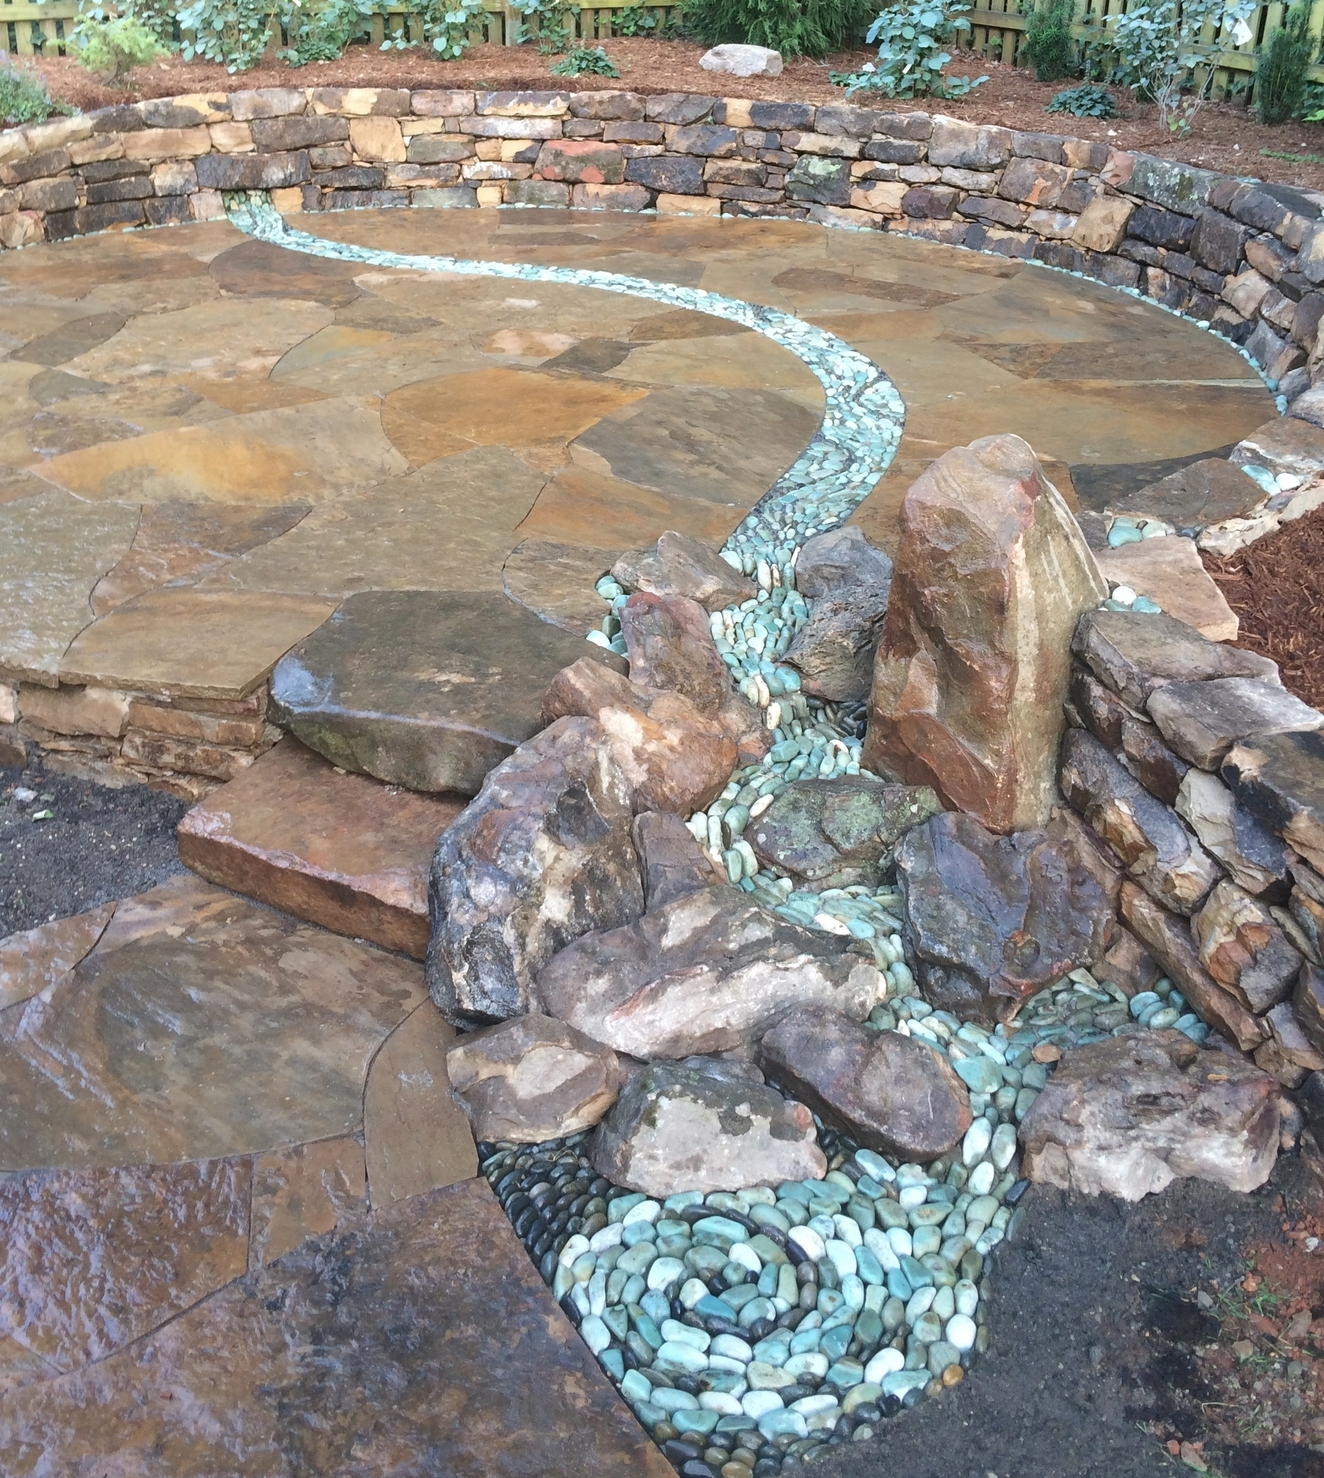 Dry stream winding through a dry laid patio with waterfall and eddy pool